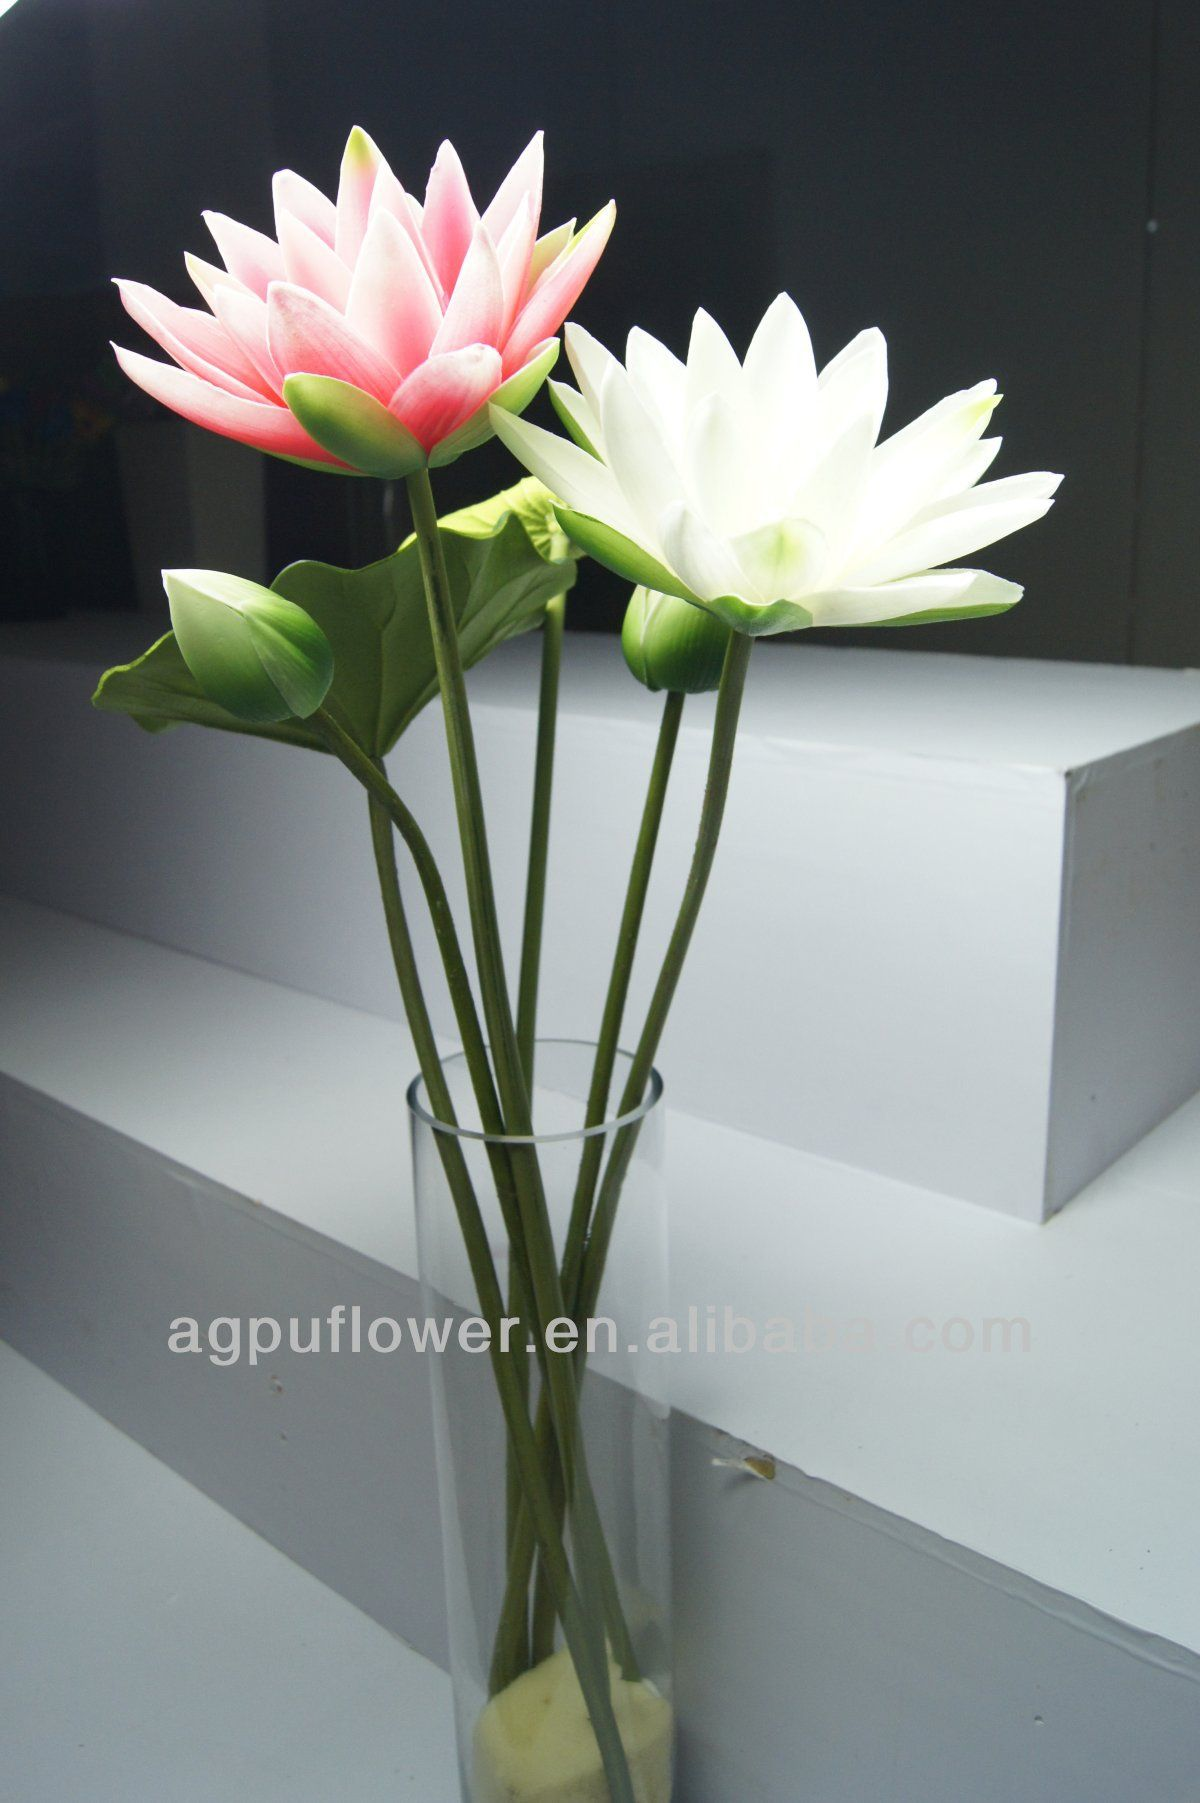 Wholesale artificial lotus flowers click on the image for wholesale artificial lotus flowers click on the image for additional details mightylinksfo